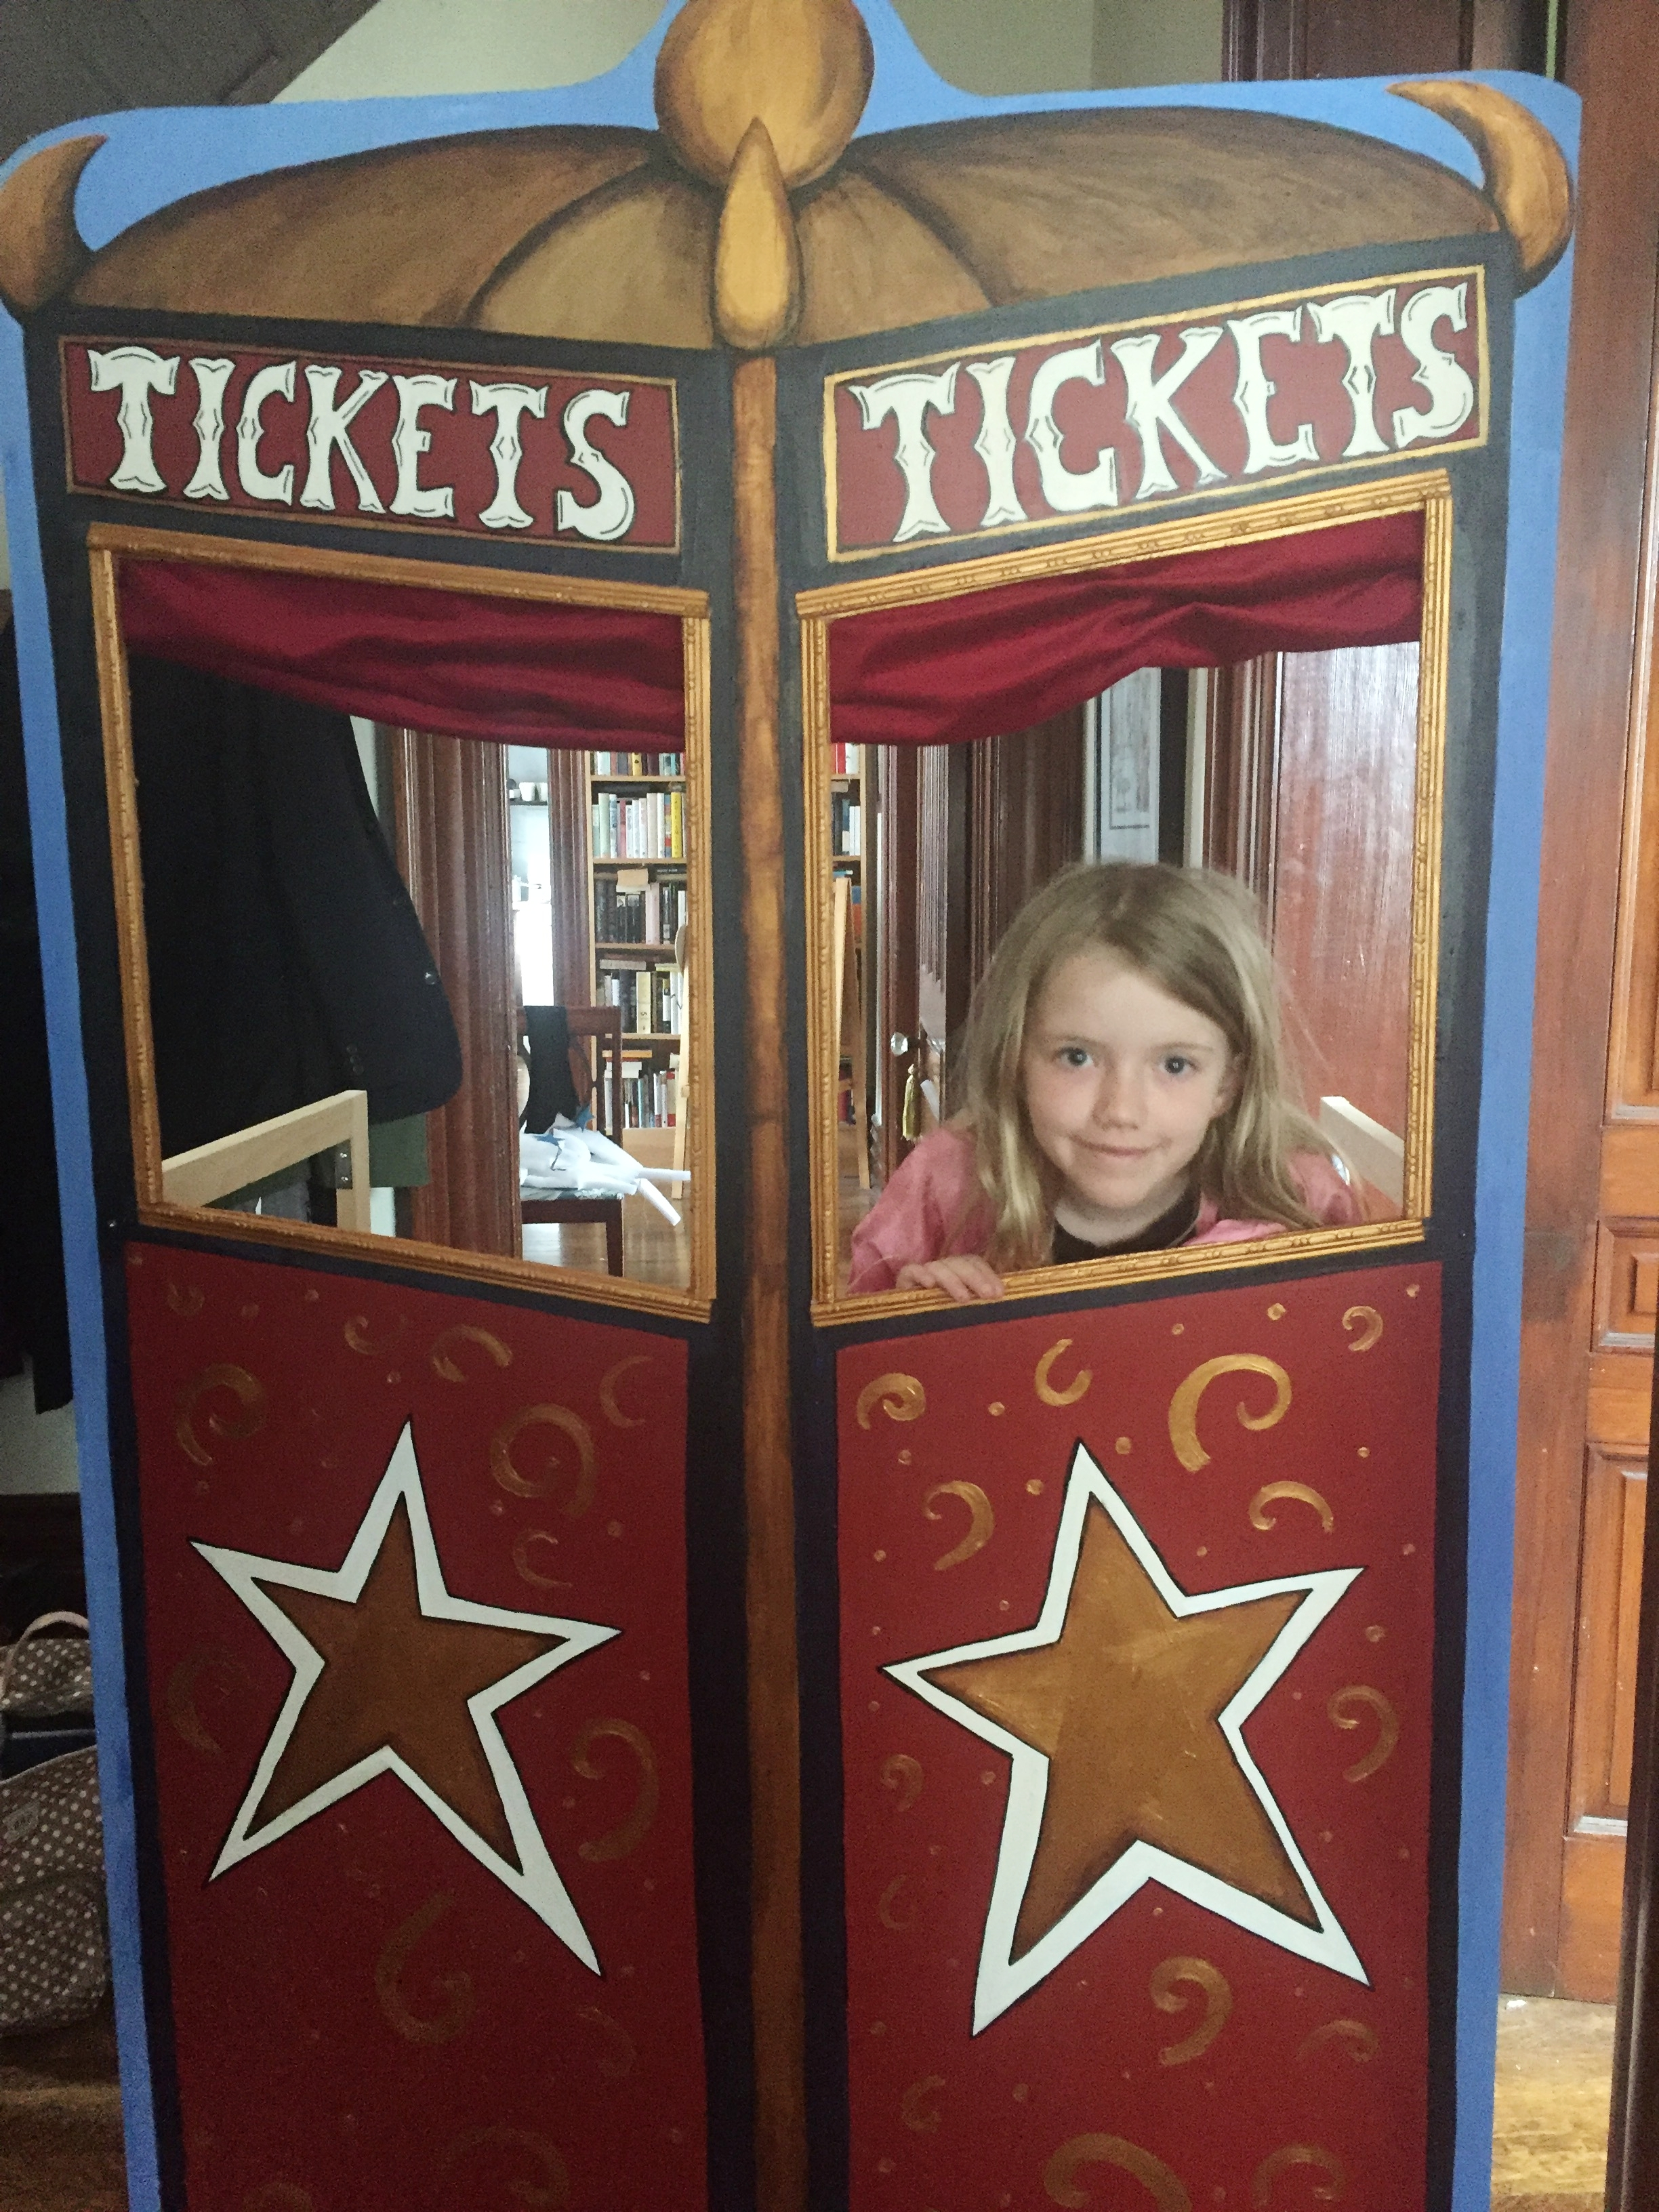 Ticket booth with cutie pie kid.